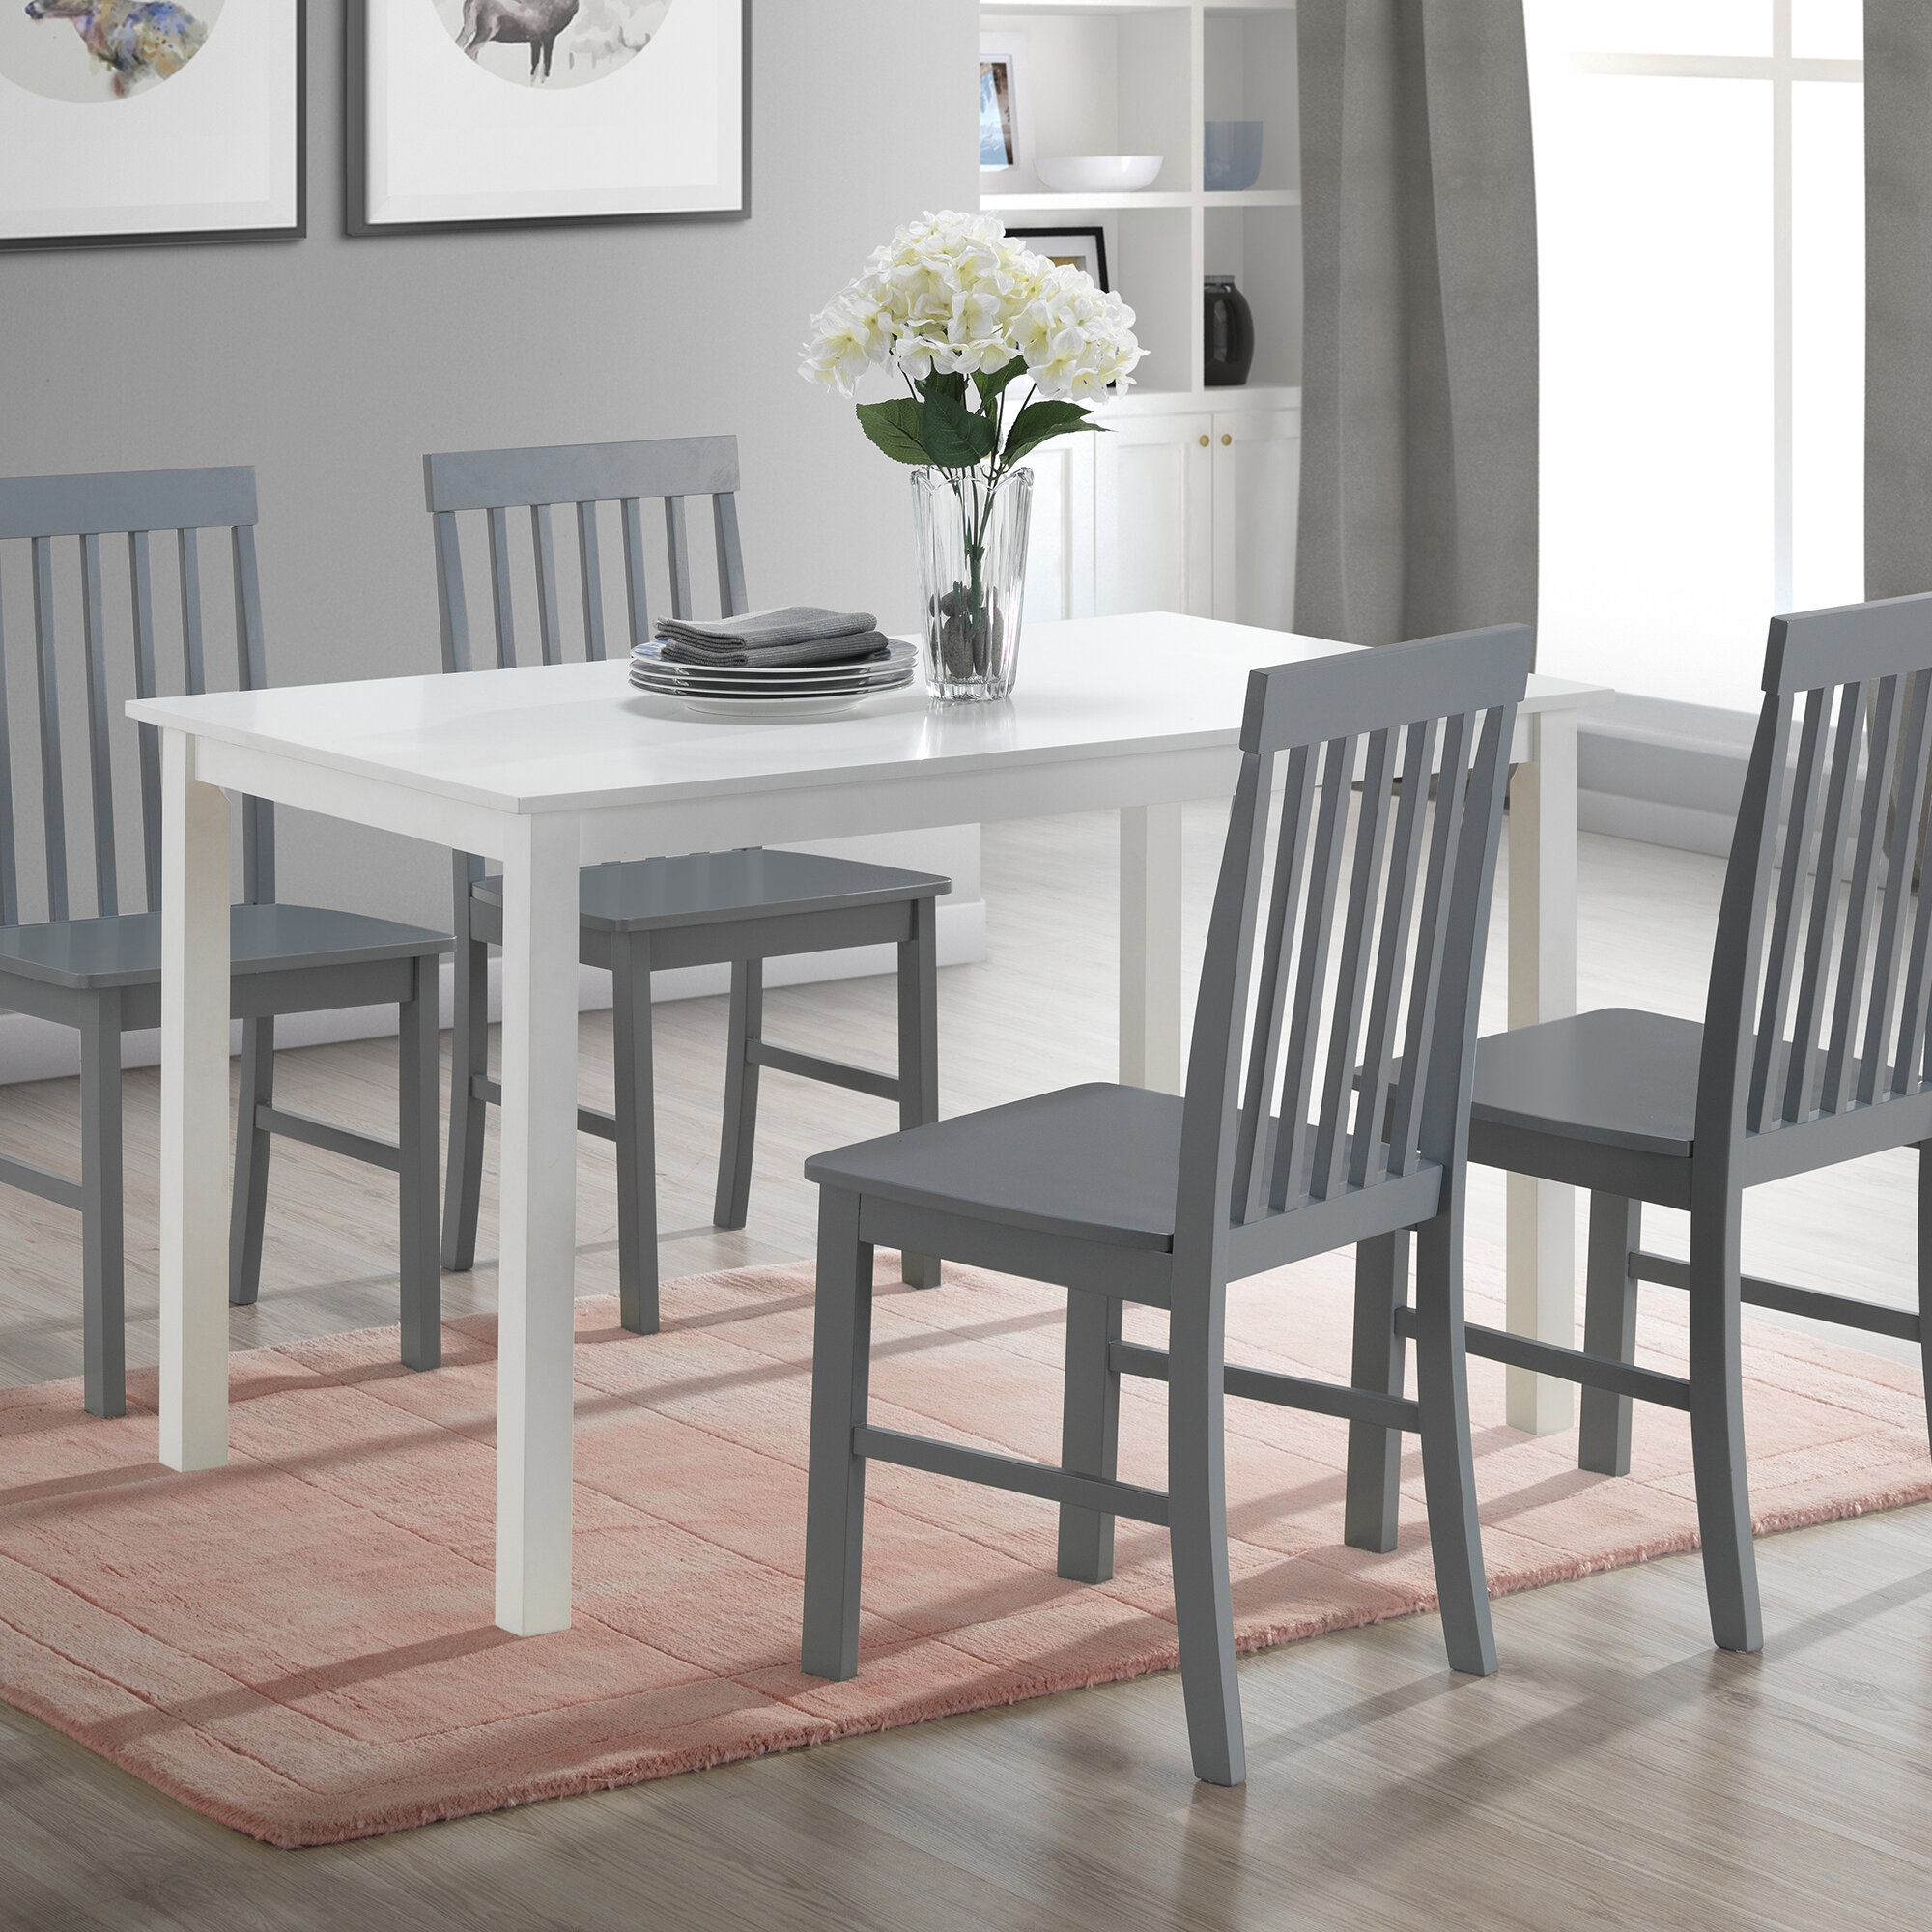 Cienna 5 Piece Dining Set Throughout Latest Bryson 5 Piece Dining Sets (Image 11 of 20)